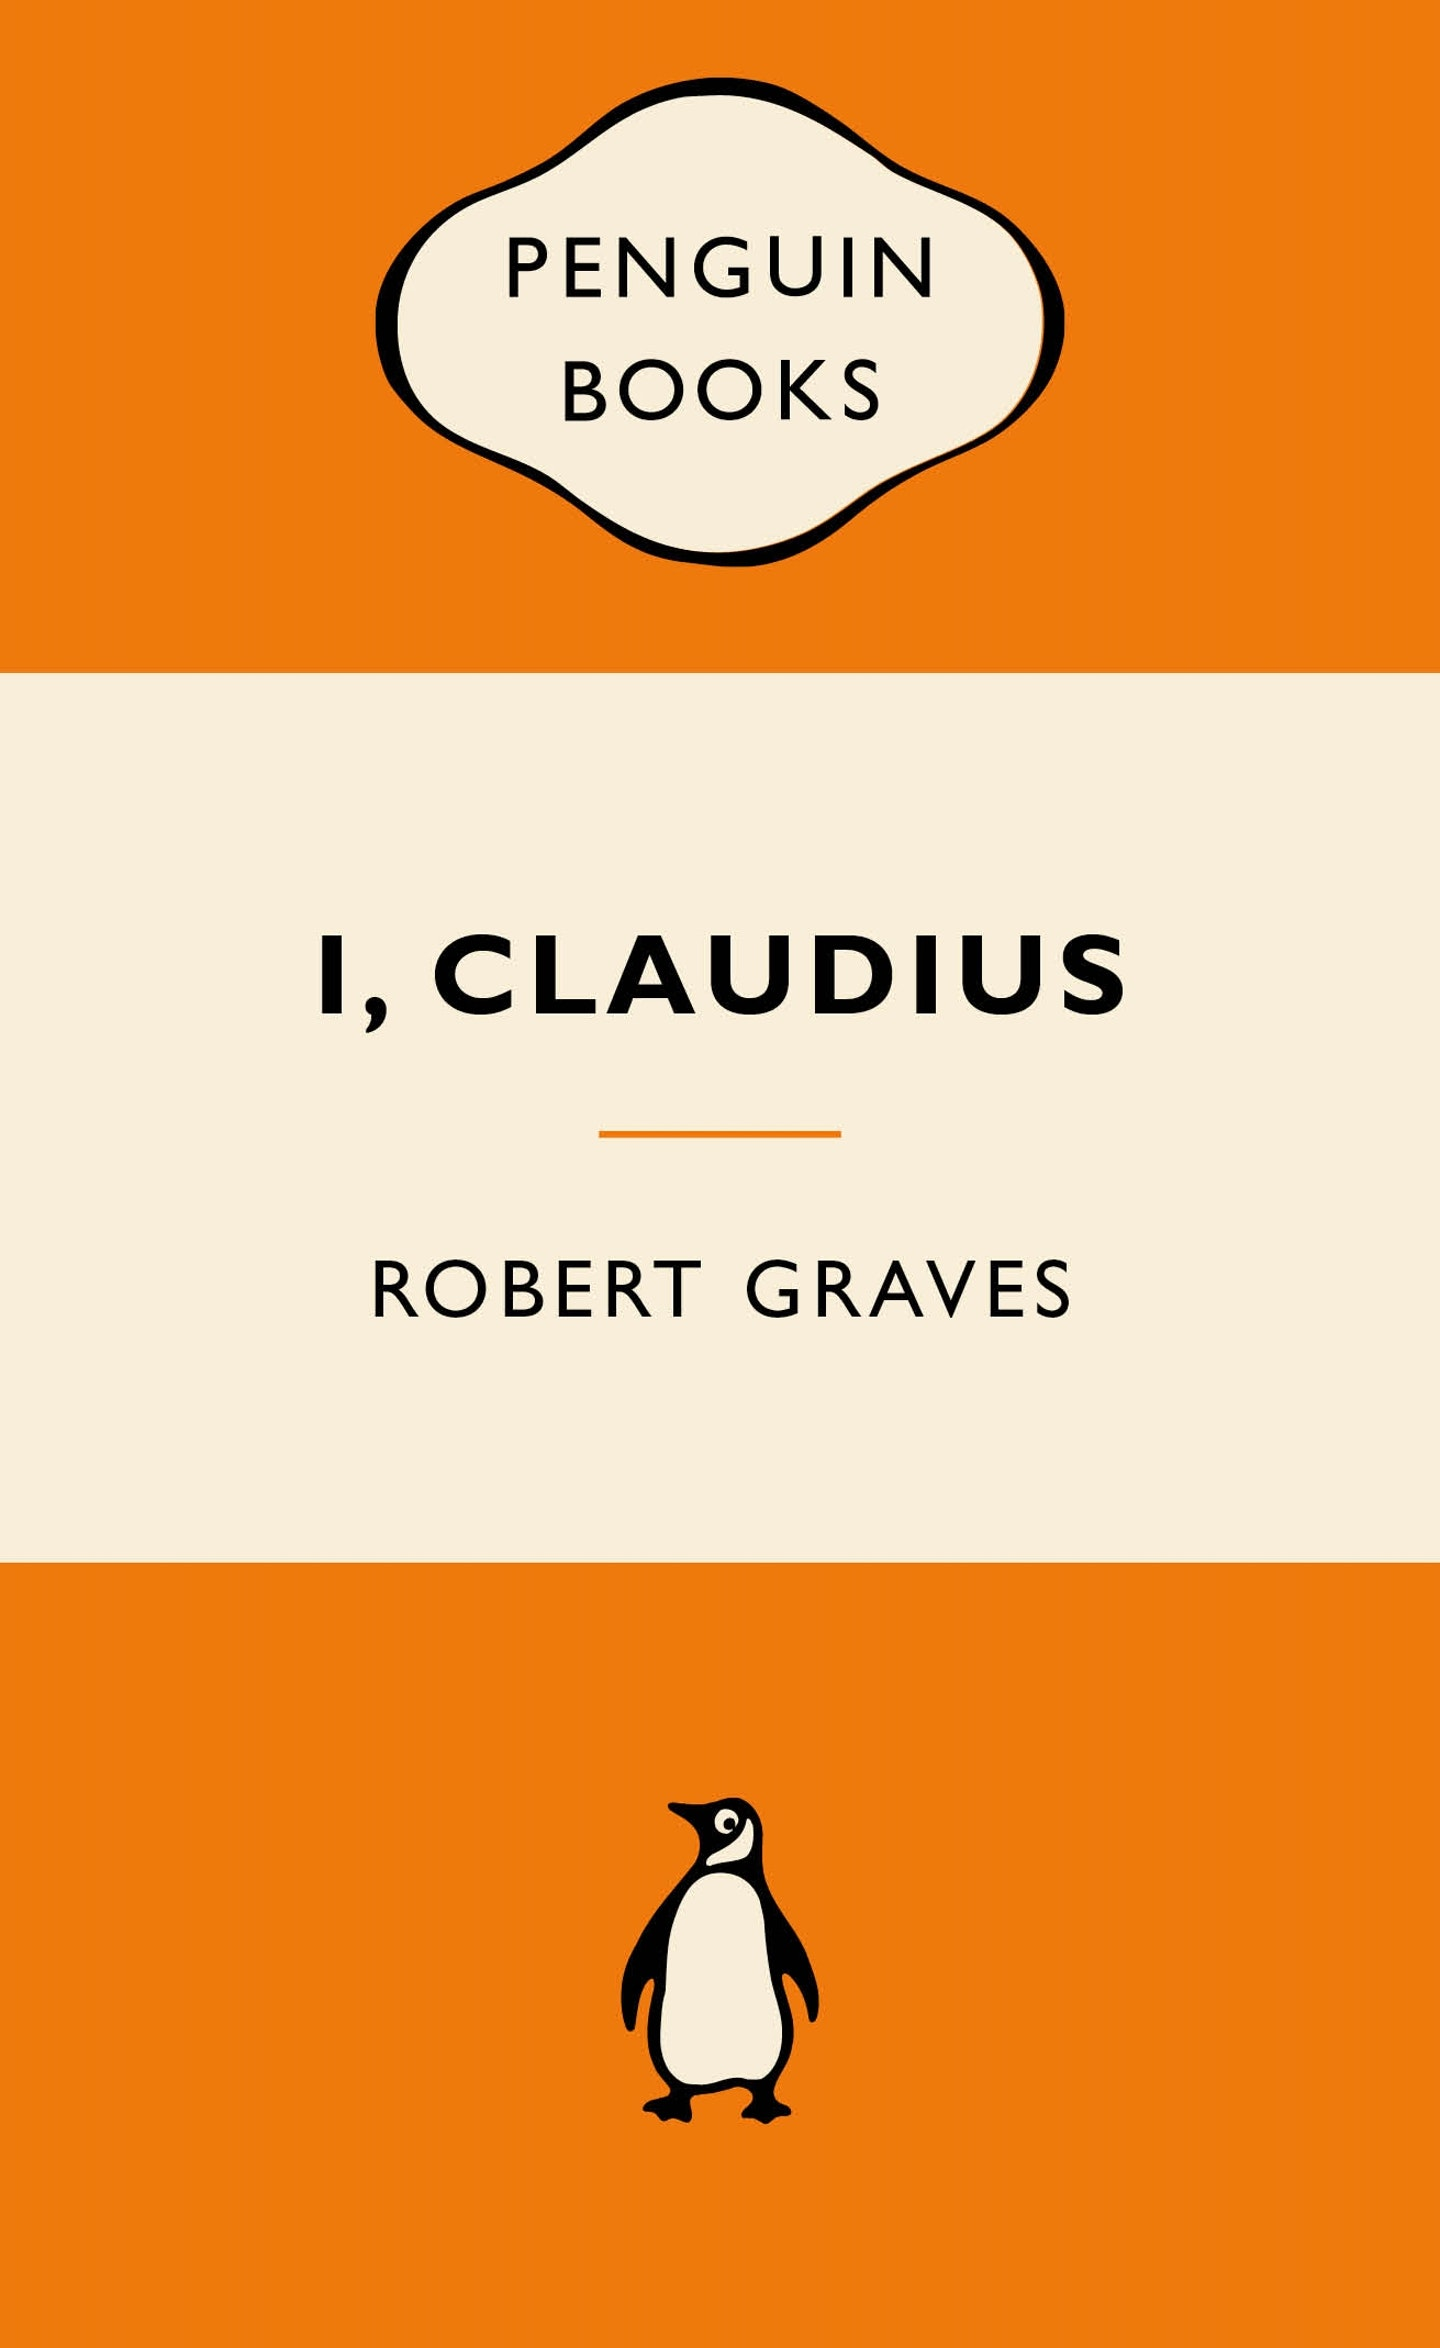 an analysis of fictional autobiographies claudius the god and augustus I, claudius (1934) is a novel by english writer robert graves, written in the form  of an autobiography of the roman emperor claudius  graves's interpretation of  the story owes much to the histories of gaius cornelius tacitus,  claudius  relays the truth to germanicus, who convinces augustus of postumus' innocence.